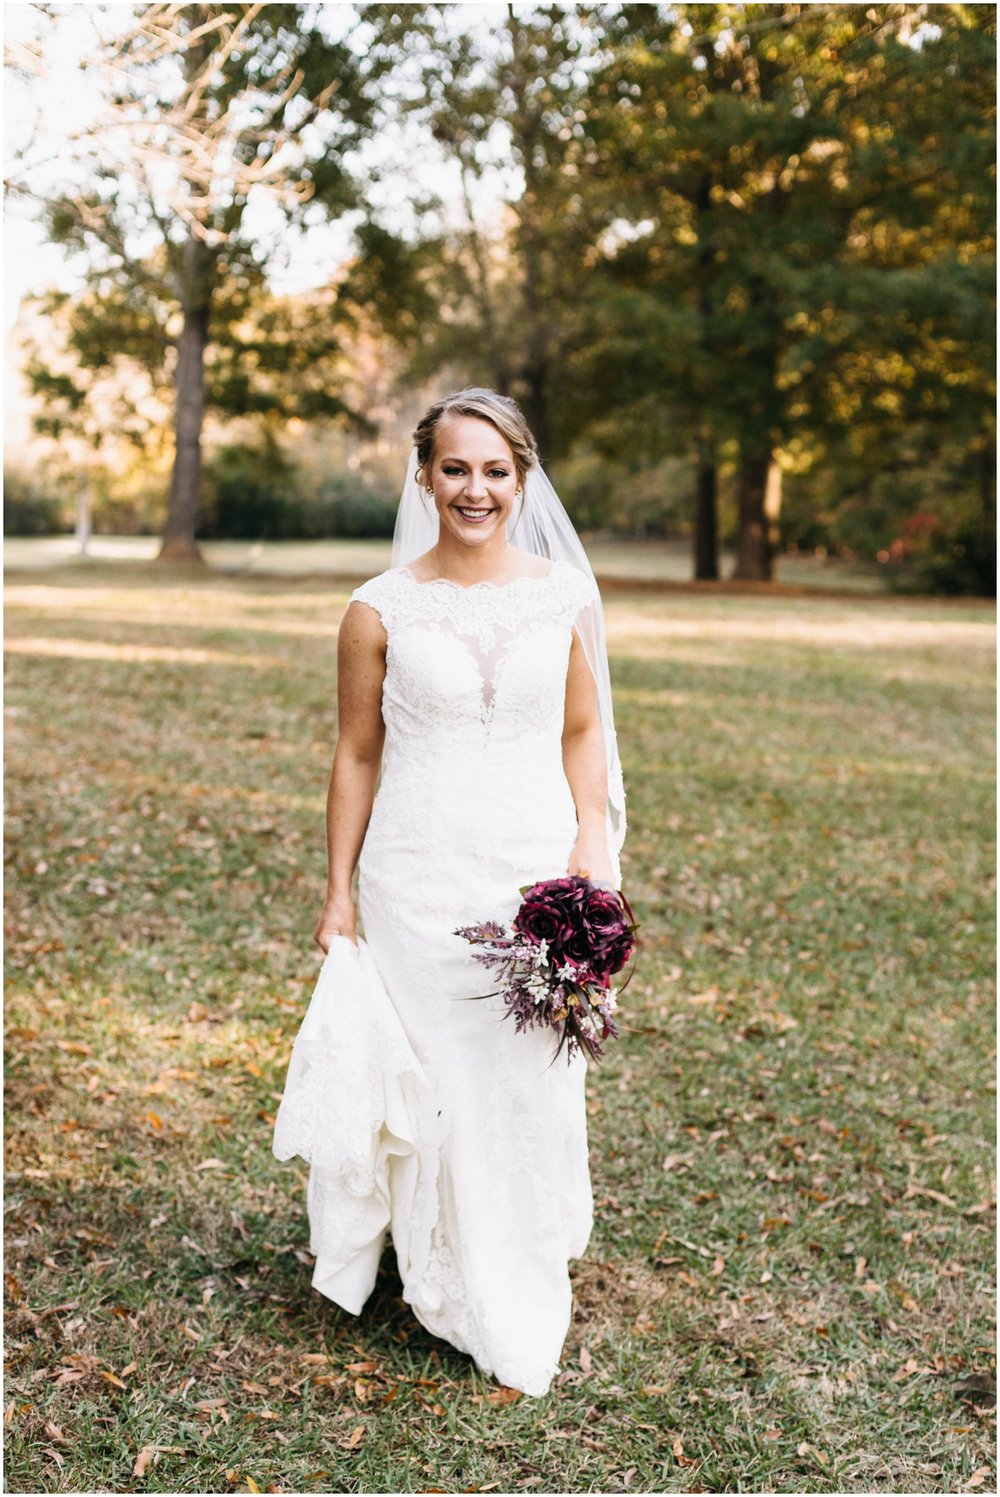 Jess+Dan_rustic_southern_farm_fall_wedding_charlotte_north carolina_taylor powers_0106.jpg